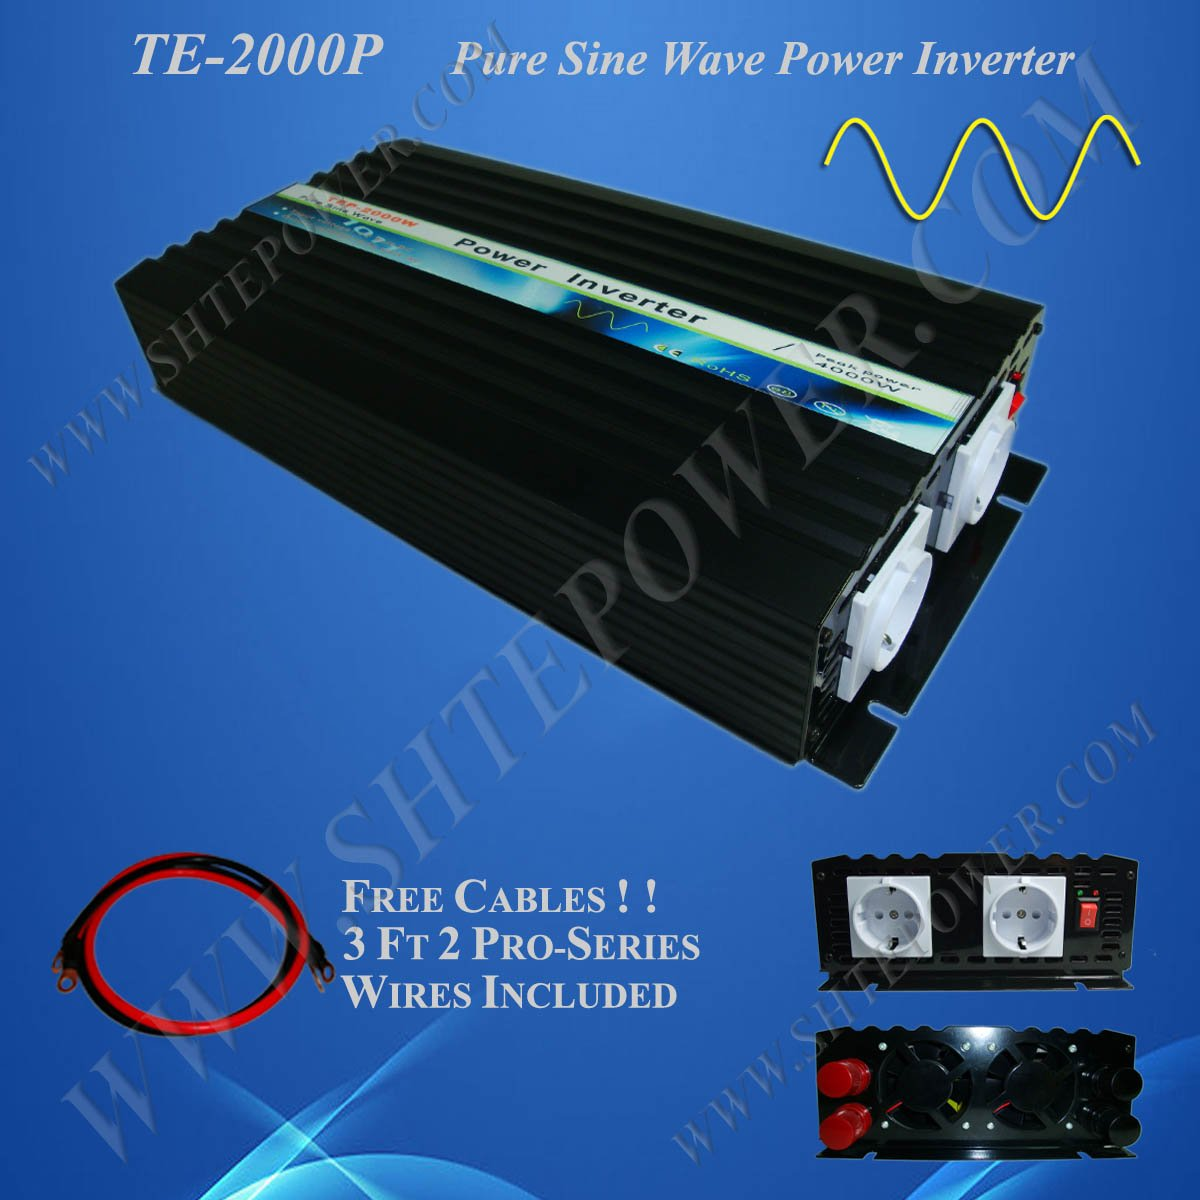 12v inverter 2000 watt 12v power inverter 2000w 12v 230v 2000w inverters 12v inverter for 20 30 meter long el wires